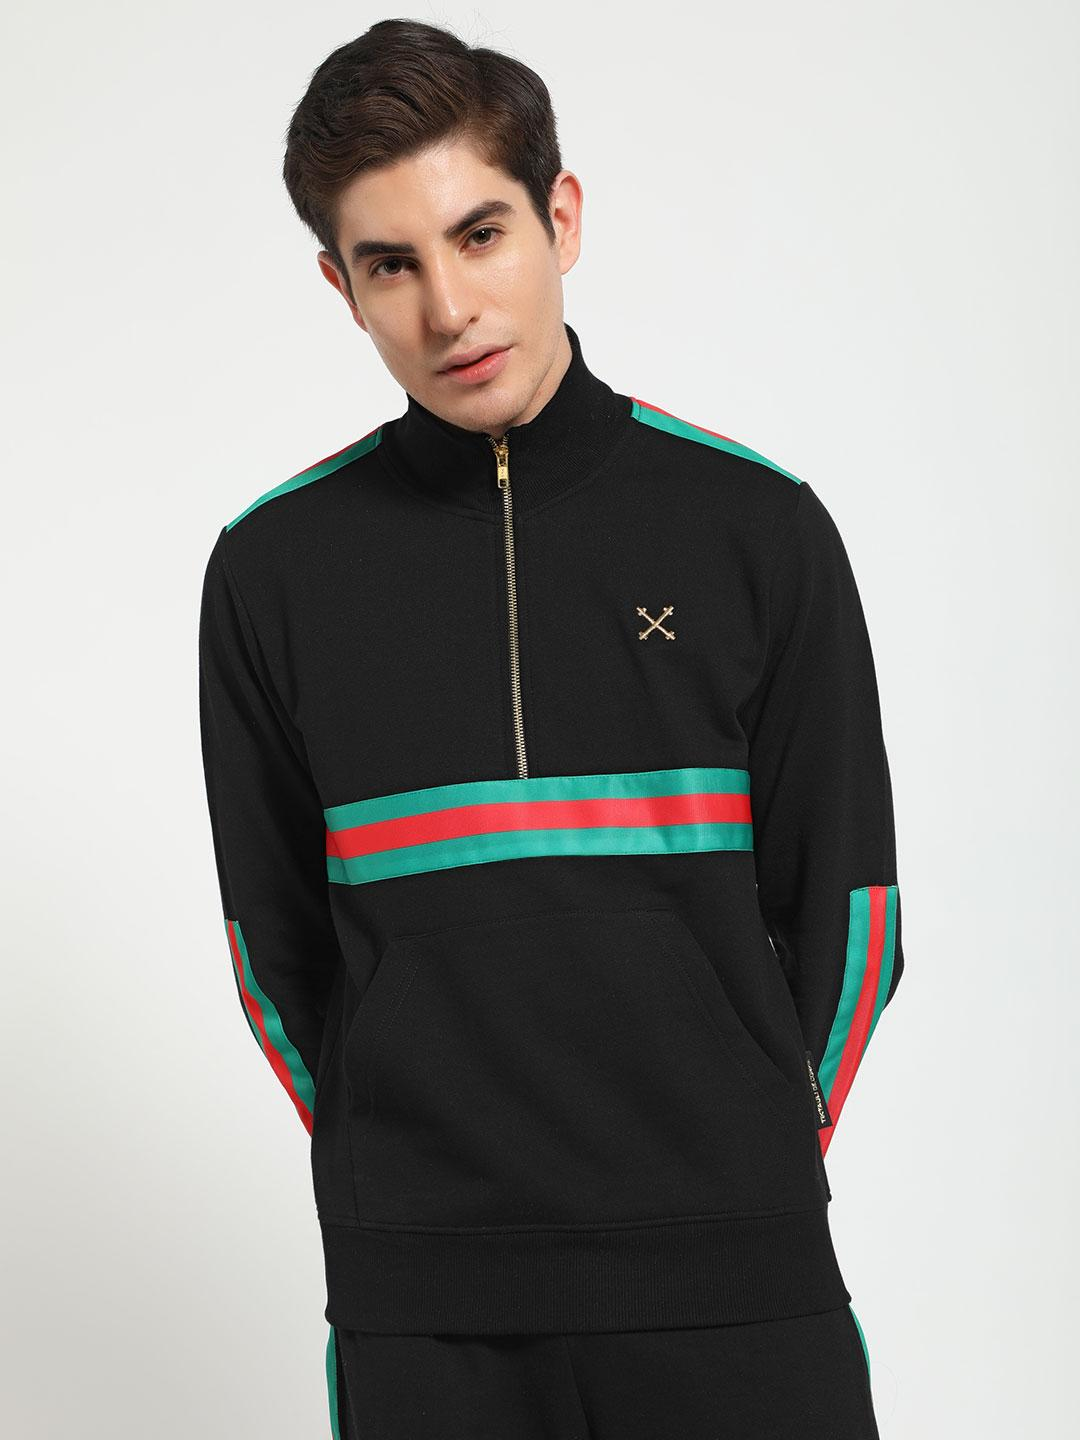 Tiktauli Black Contrast Tape Zip-Up Sweatshirt 1